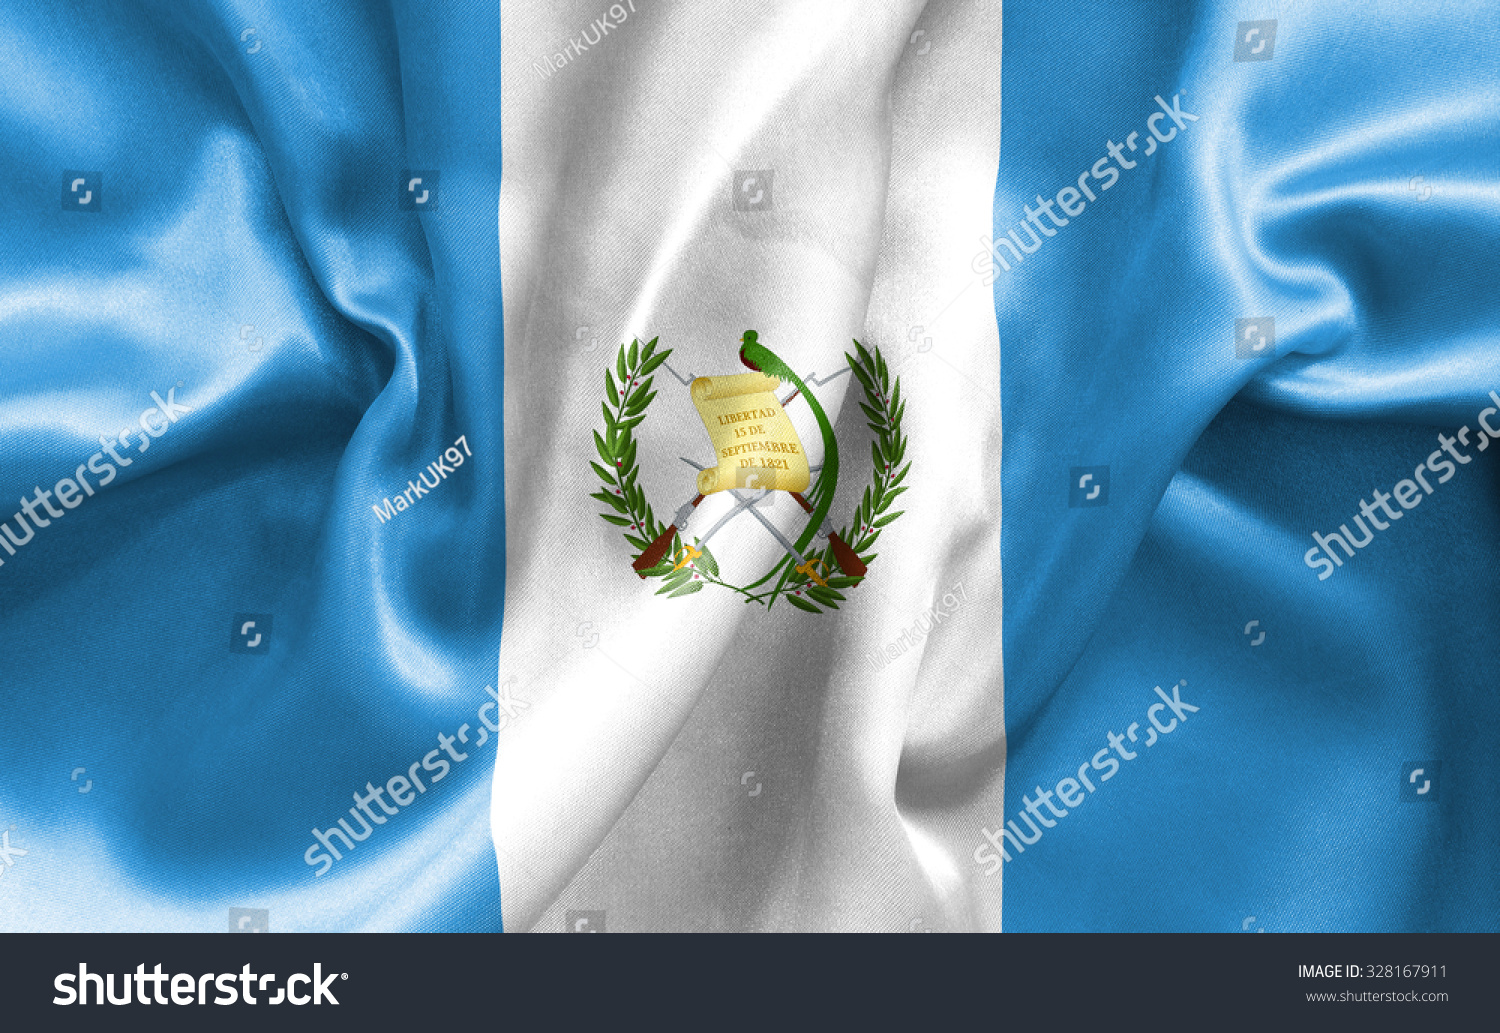 Guatemala Flag Texture Creased And Crumpled Up With Light And